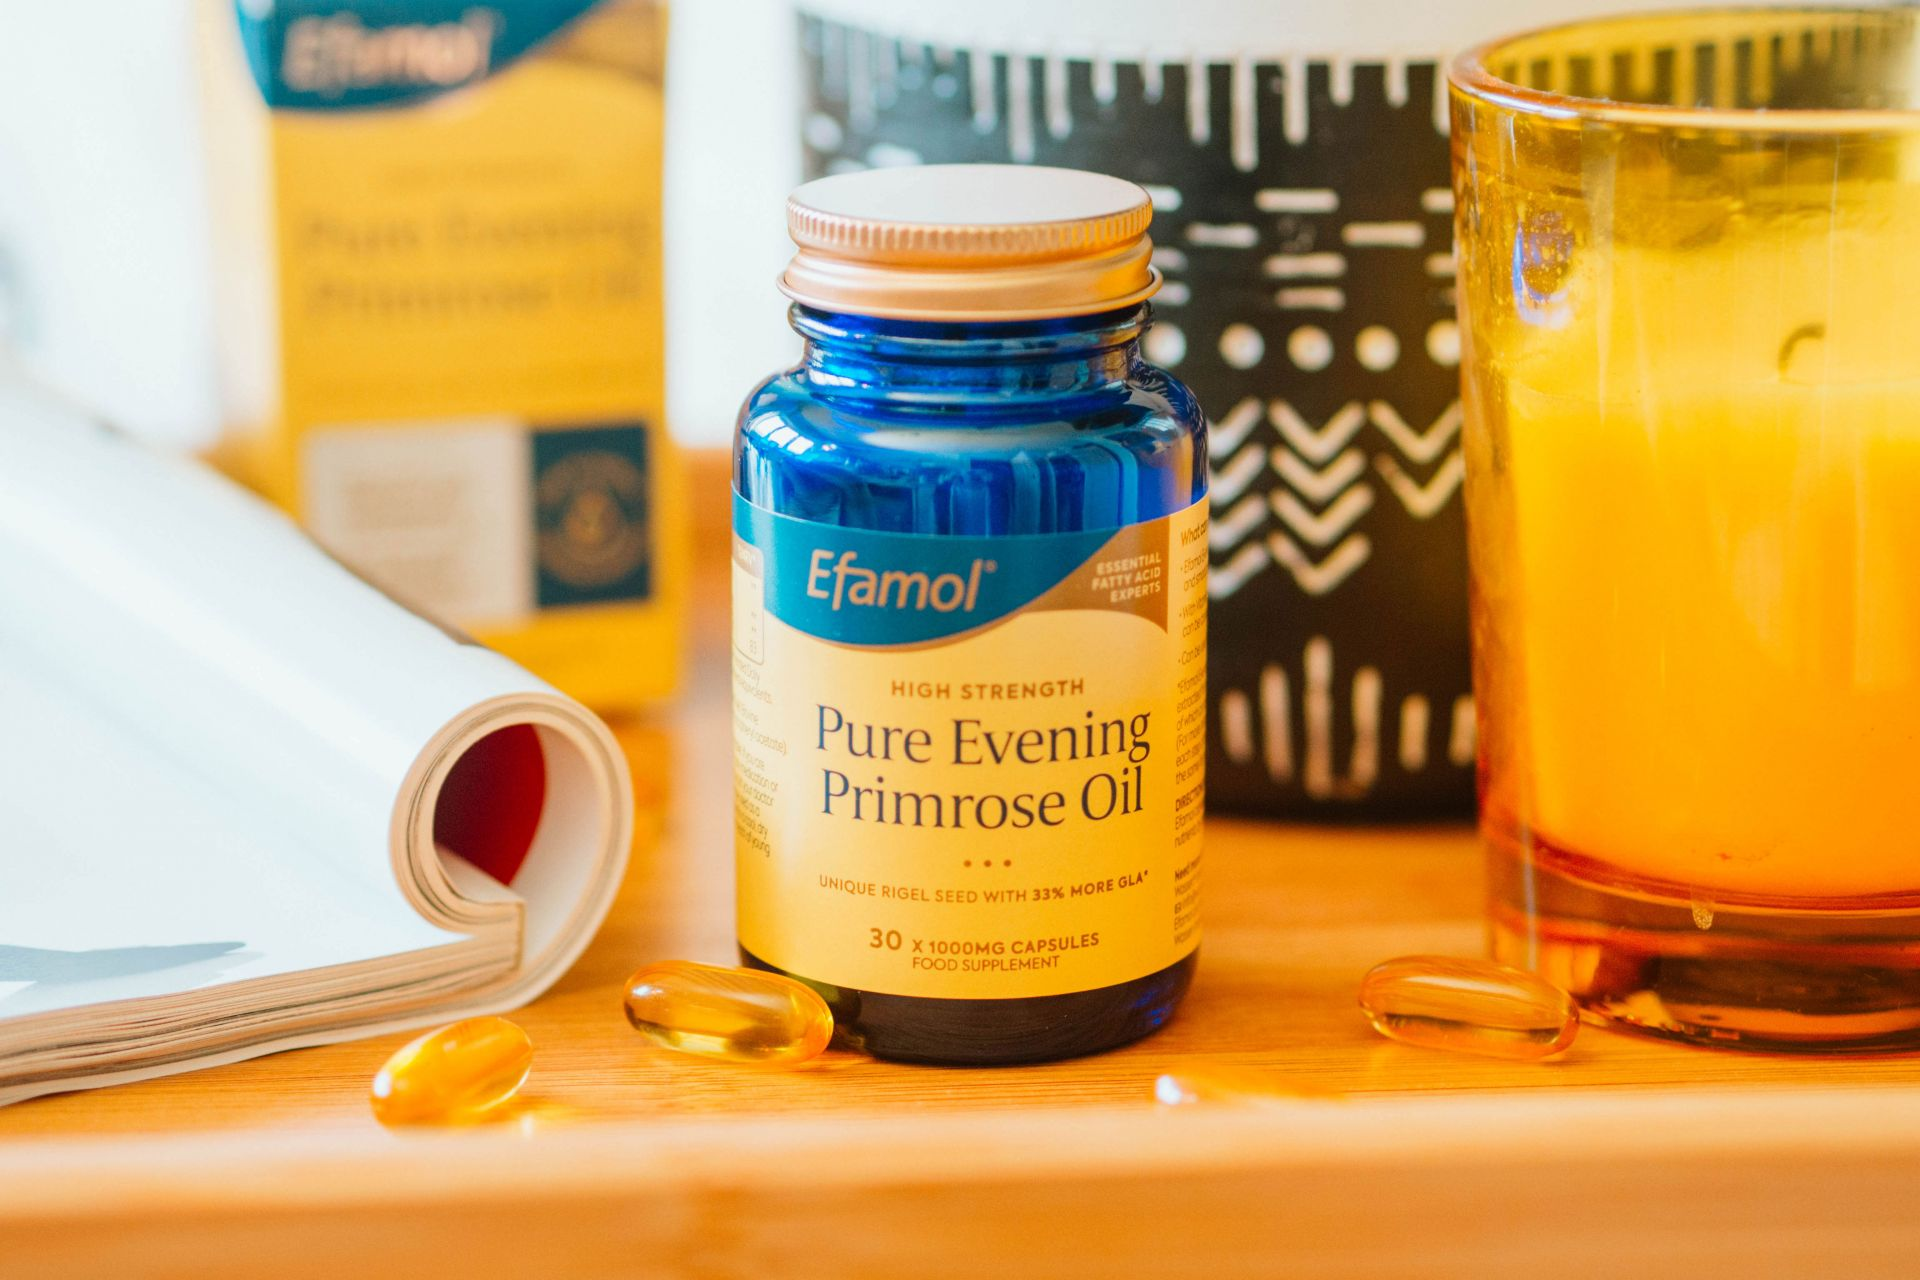 Efamol Pure Evening Primrose Oil Review